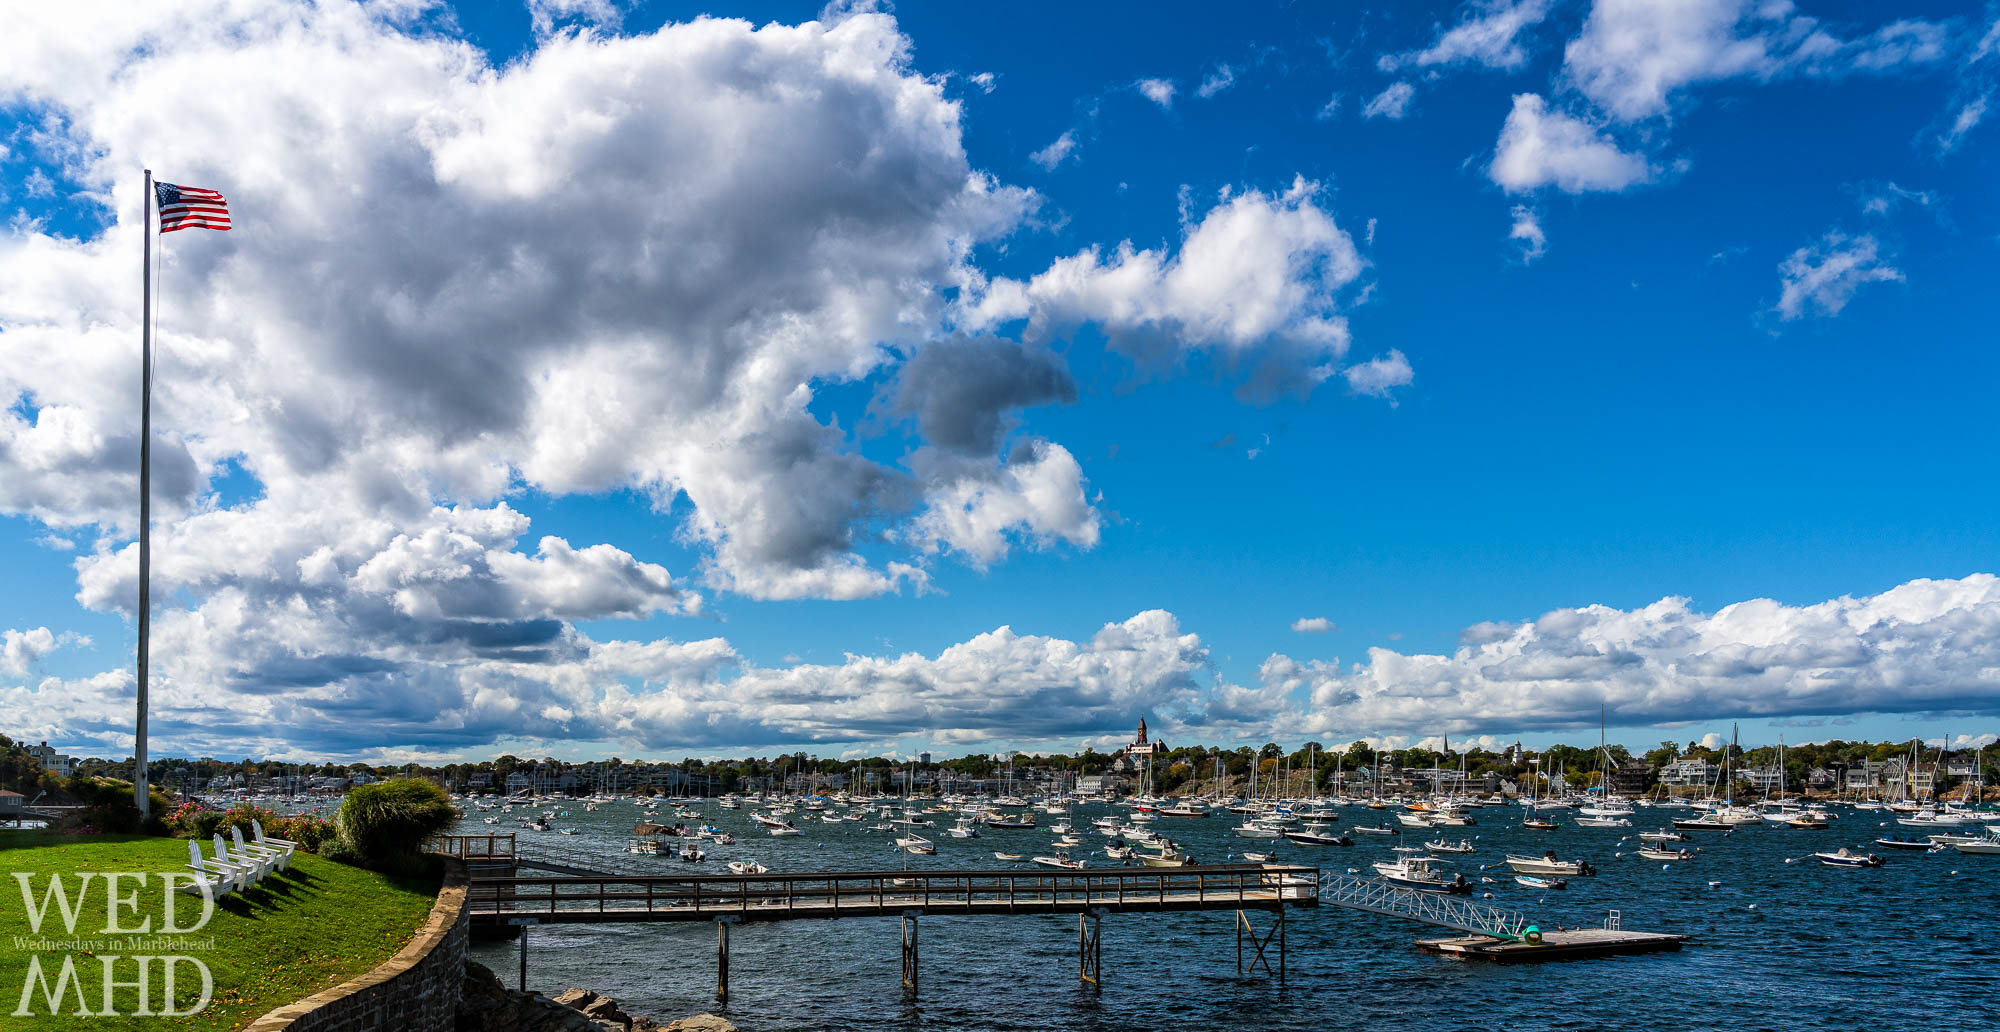 A mid-afternoon drive became a ring around the neck with stops such as this one on Corinthian Lane to take in the last of the summer views on Marblehead harbor